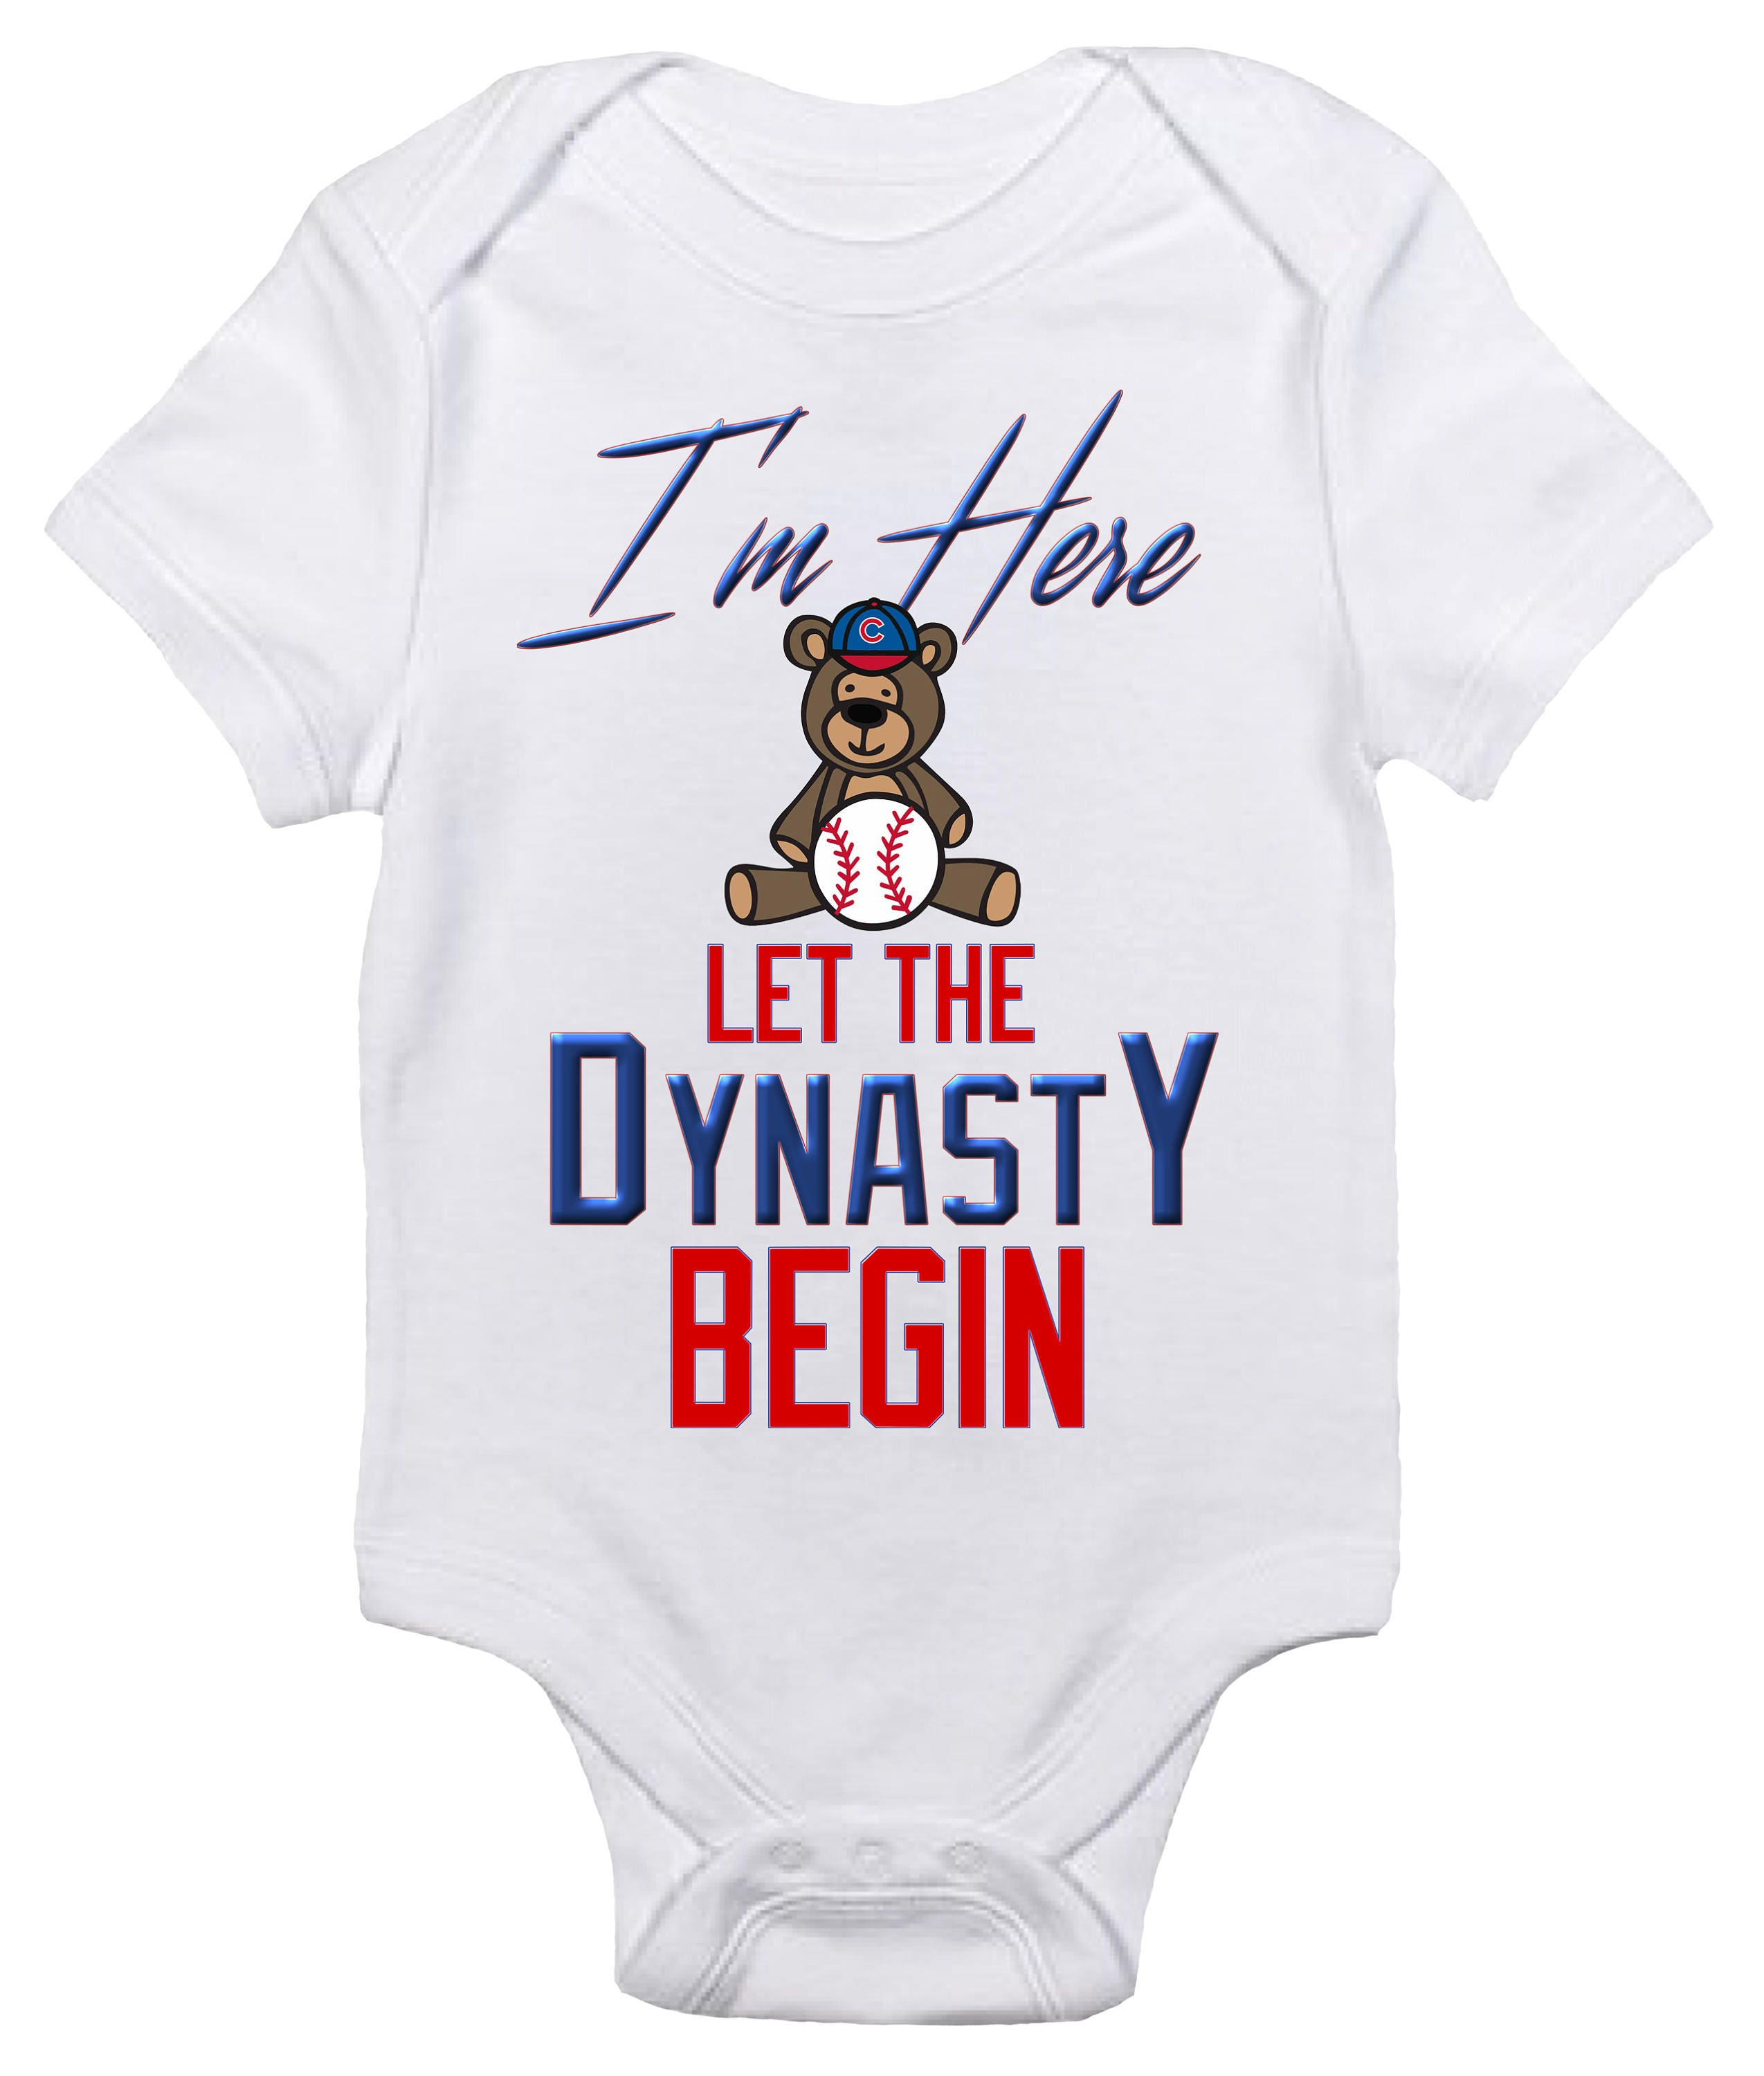 Baby Bodysuit I m Here Let The Dynasty Begin Cute Cubs